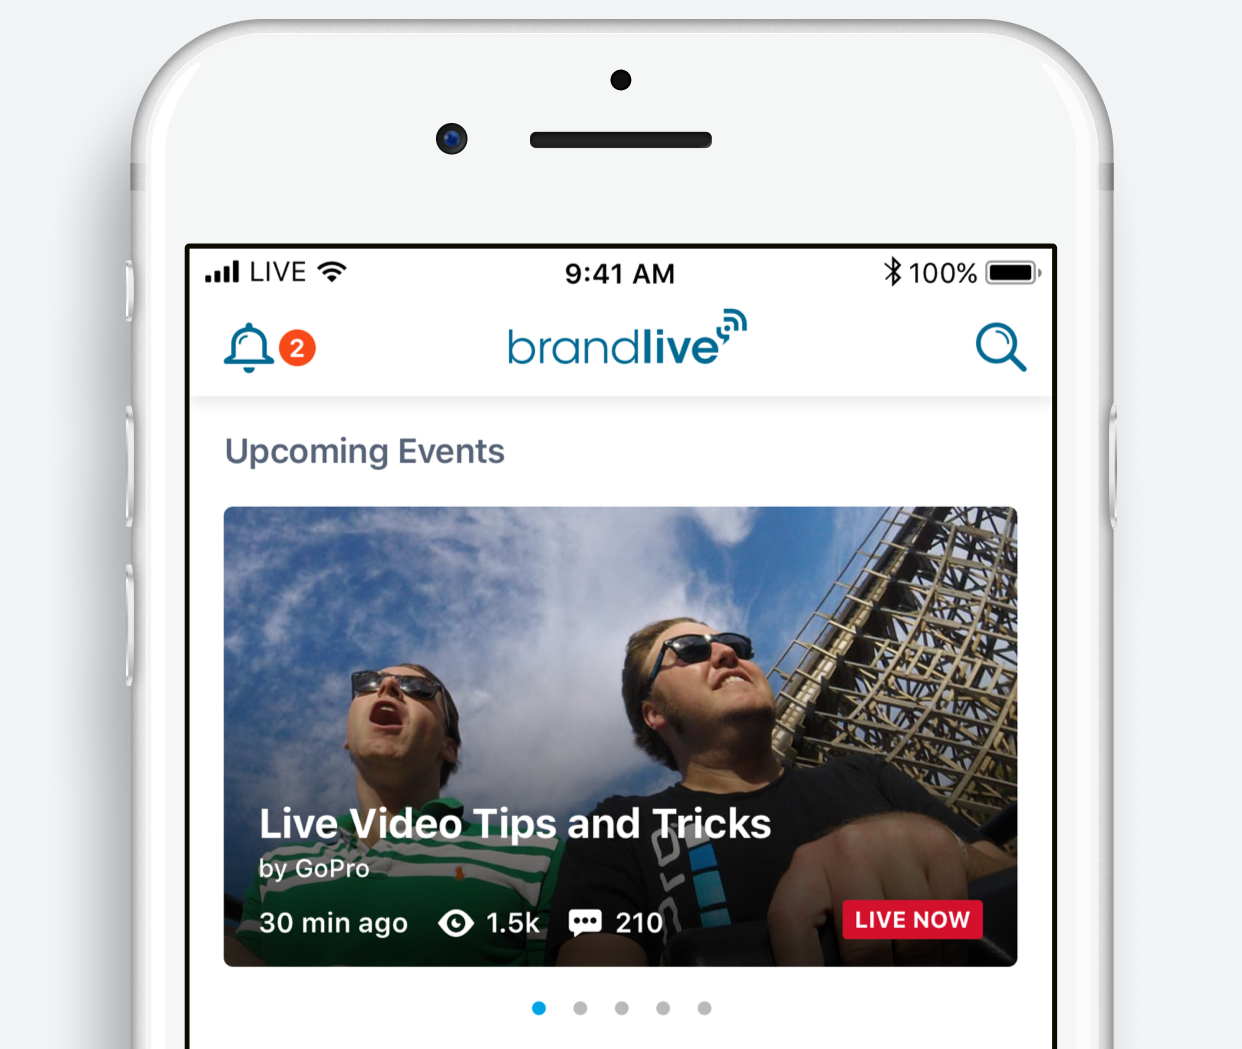 Brandlive Launches Exciting New Mobile App